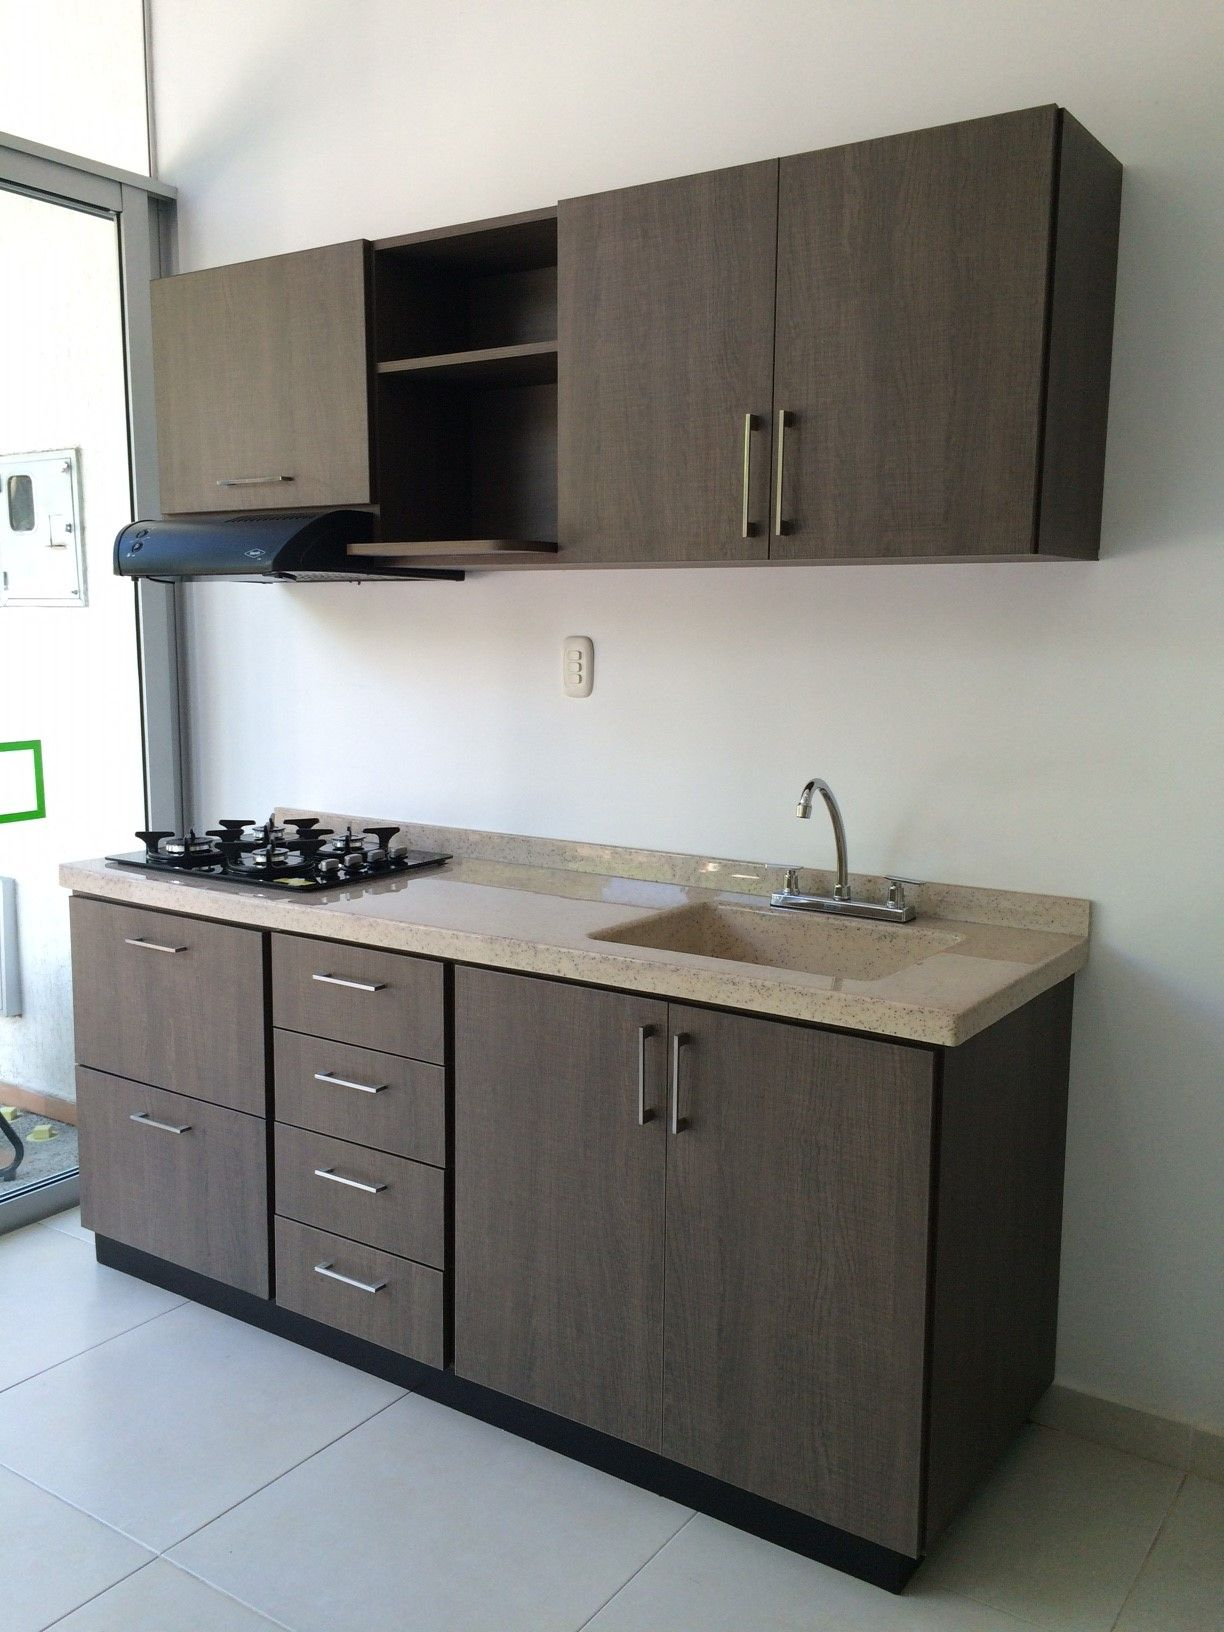 Showroom cozzina colombia melamina vesto ideas for Amoblamientos de cocina en melamina